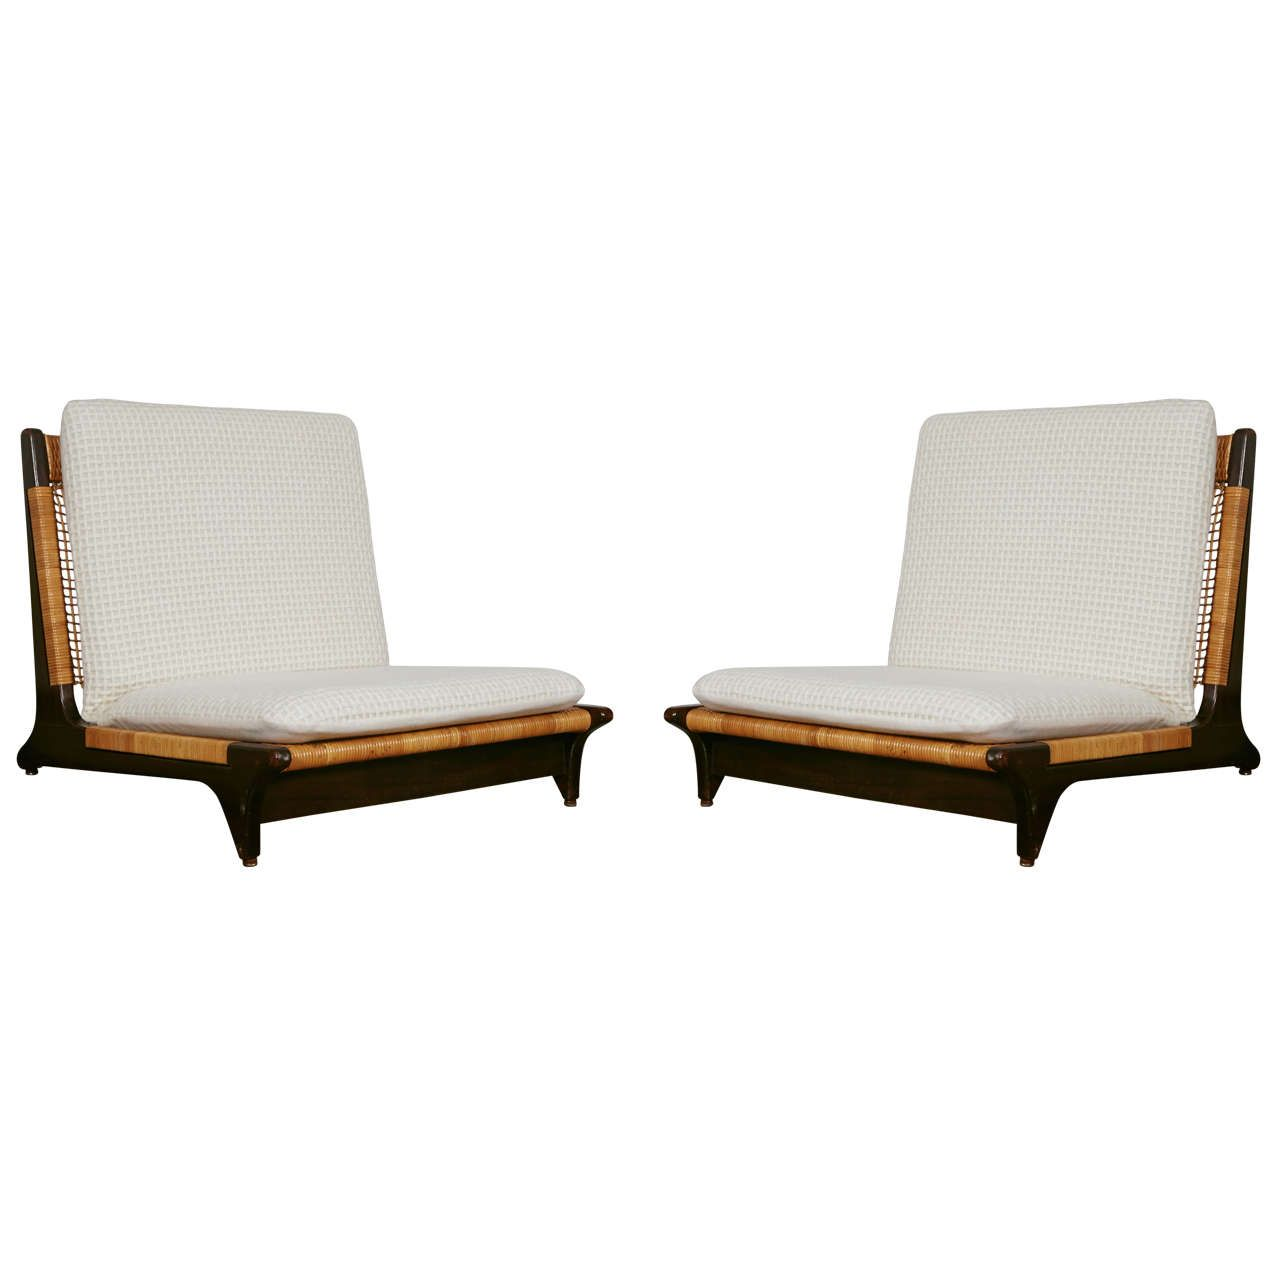 Antique lounge chairs - Pair Of Hans Olsen Low Chairs